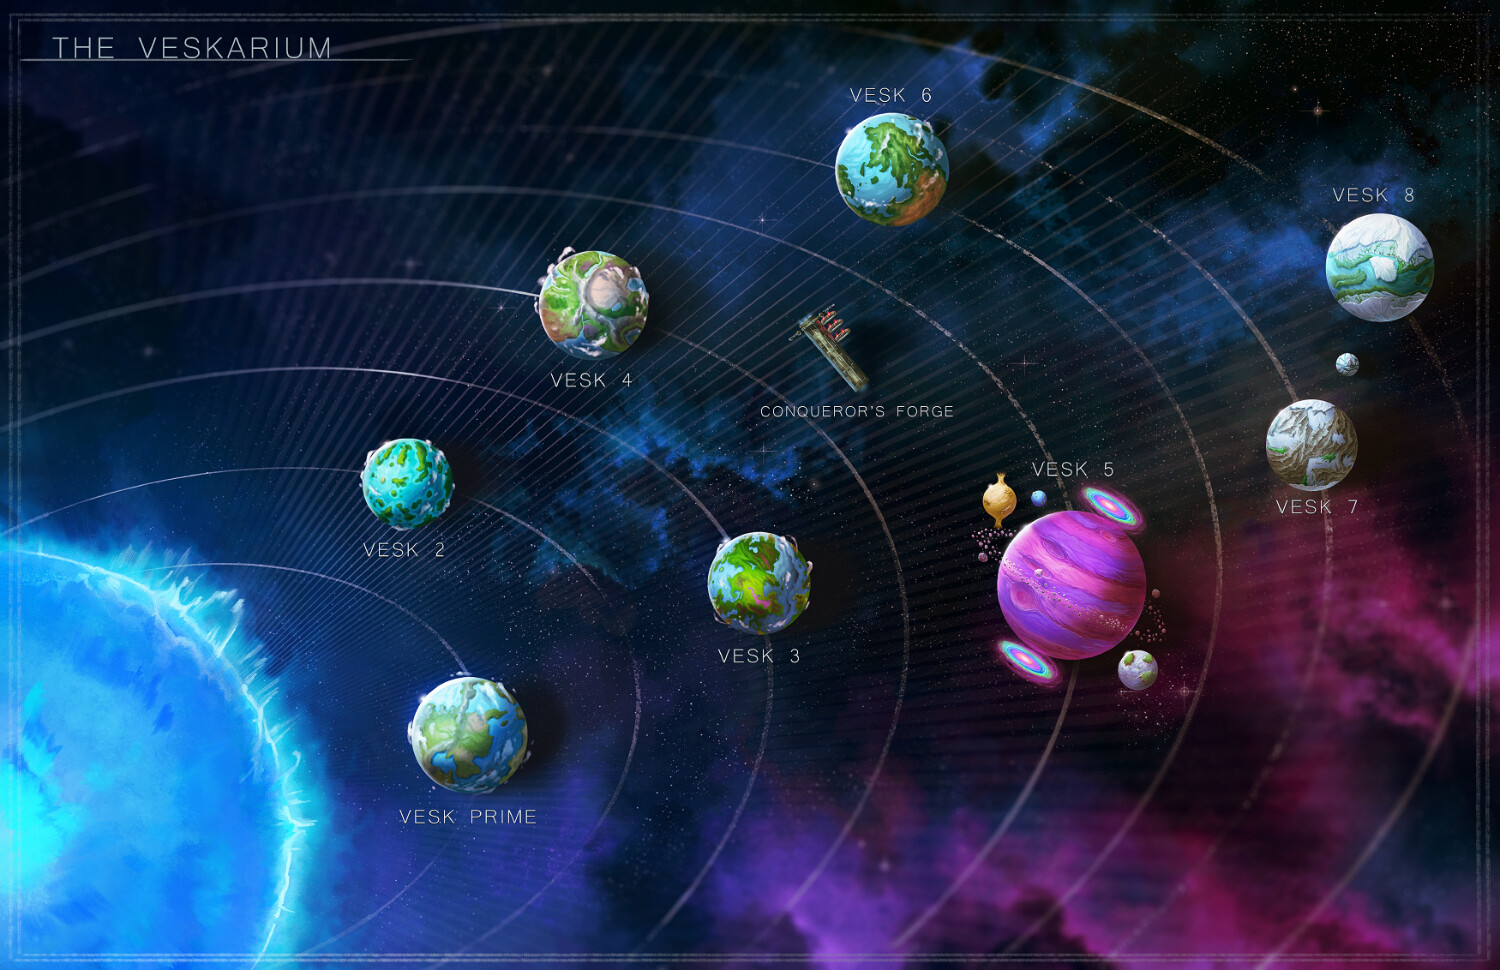 Each planet has its own illustration!